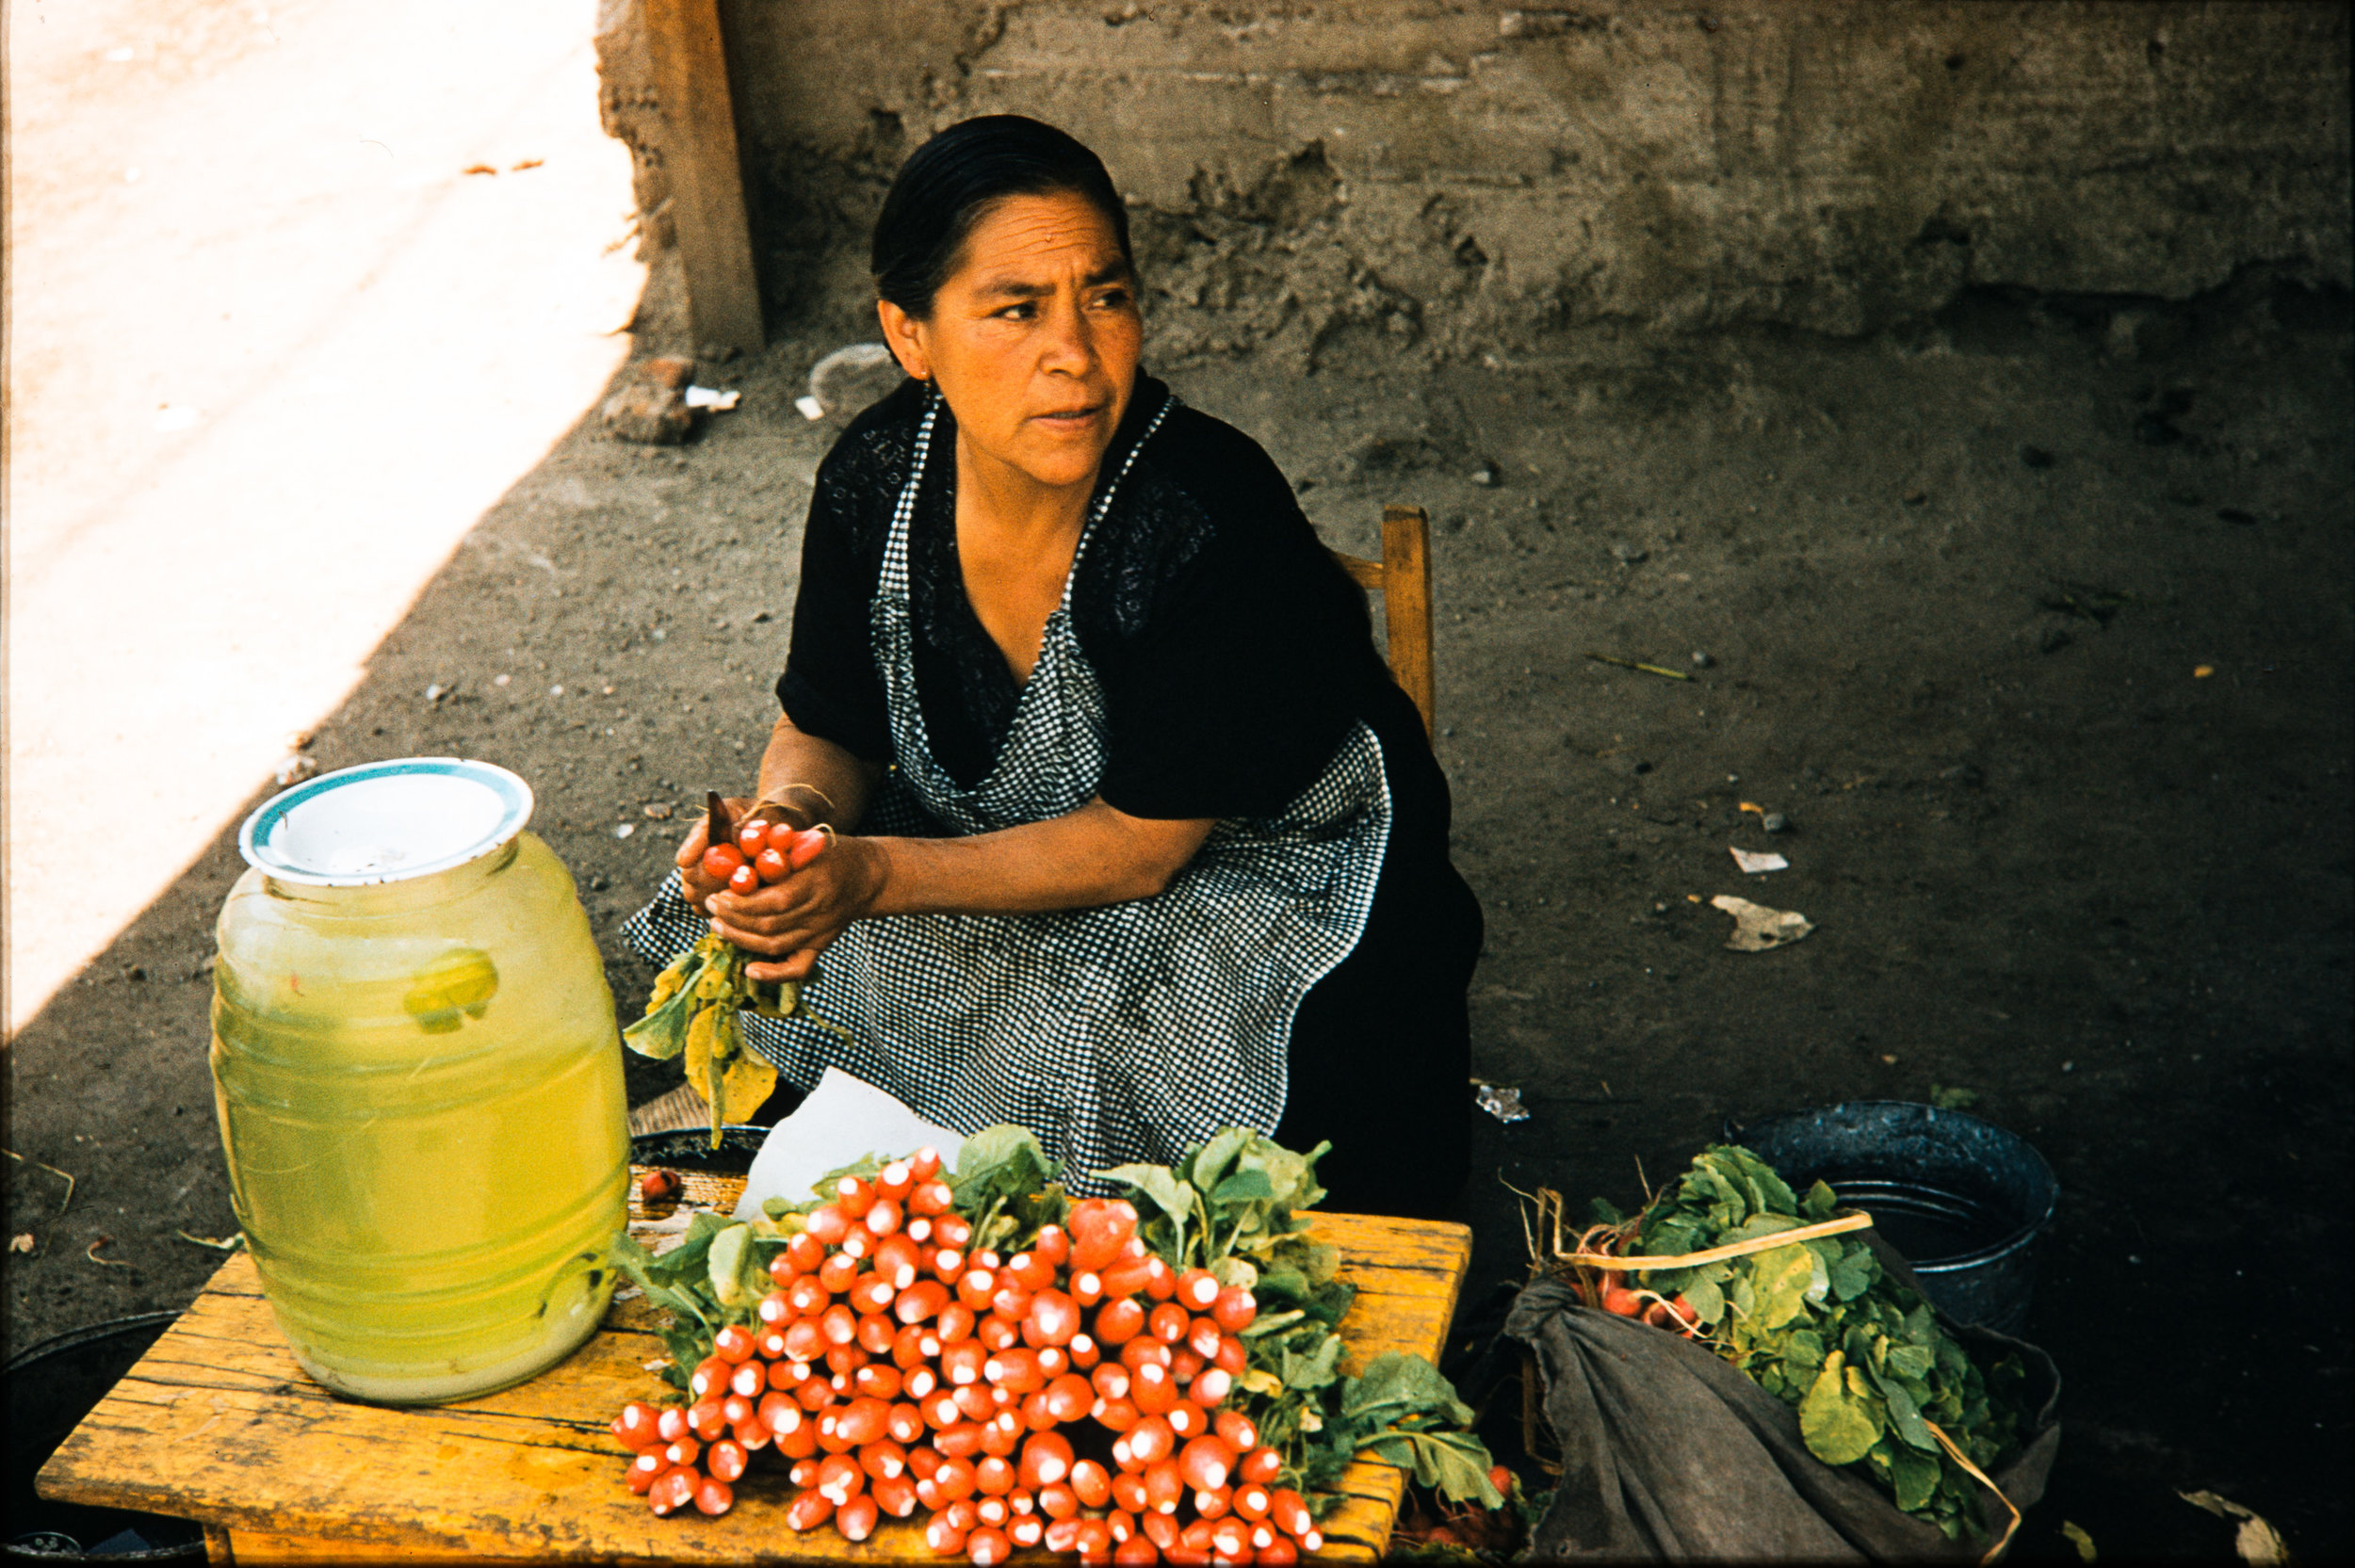 Woman preparing vegetables, Mexico, 1957